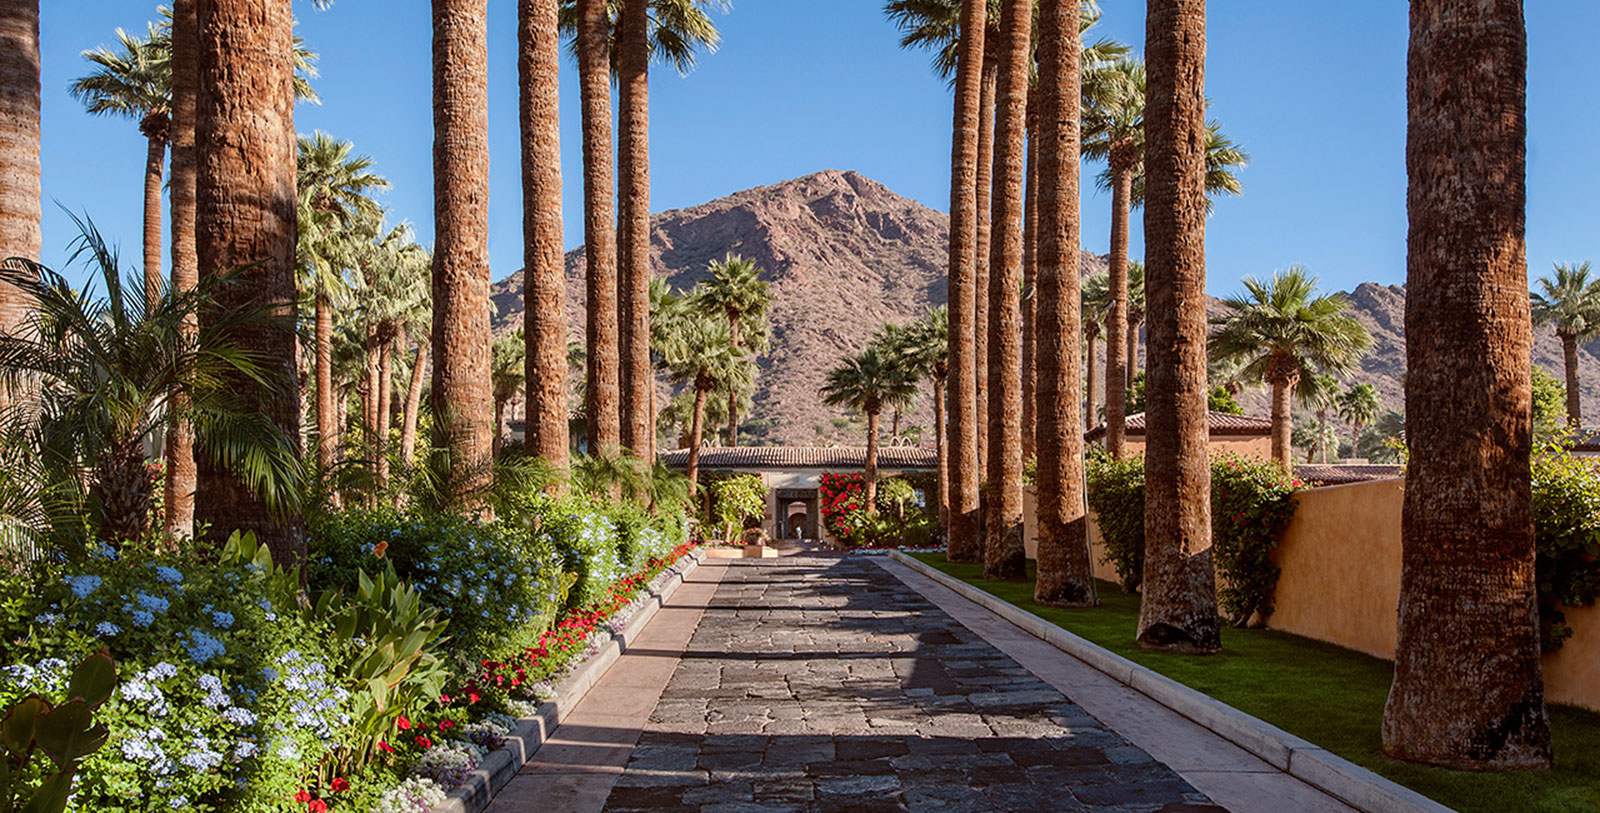 Image of Entrance to Royal Palms Resort and Spa, 1948, Member of Historic Hotels of America, in Phoenix Arizona, Overview